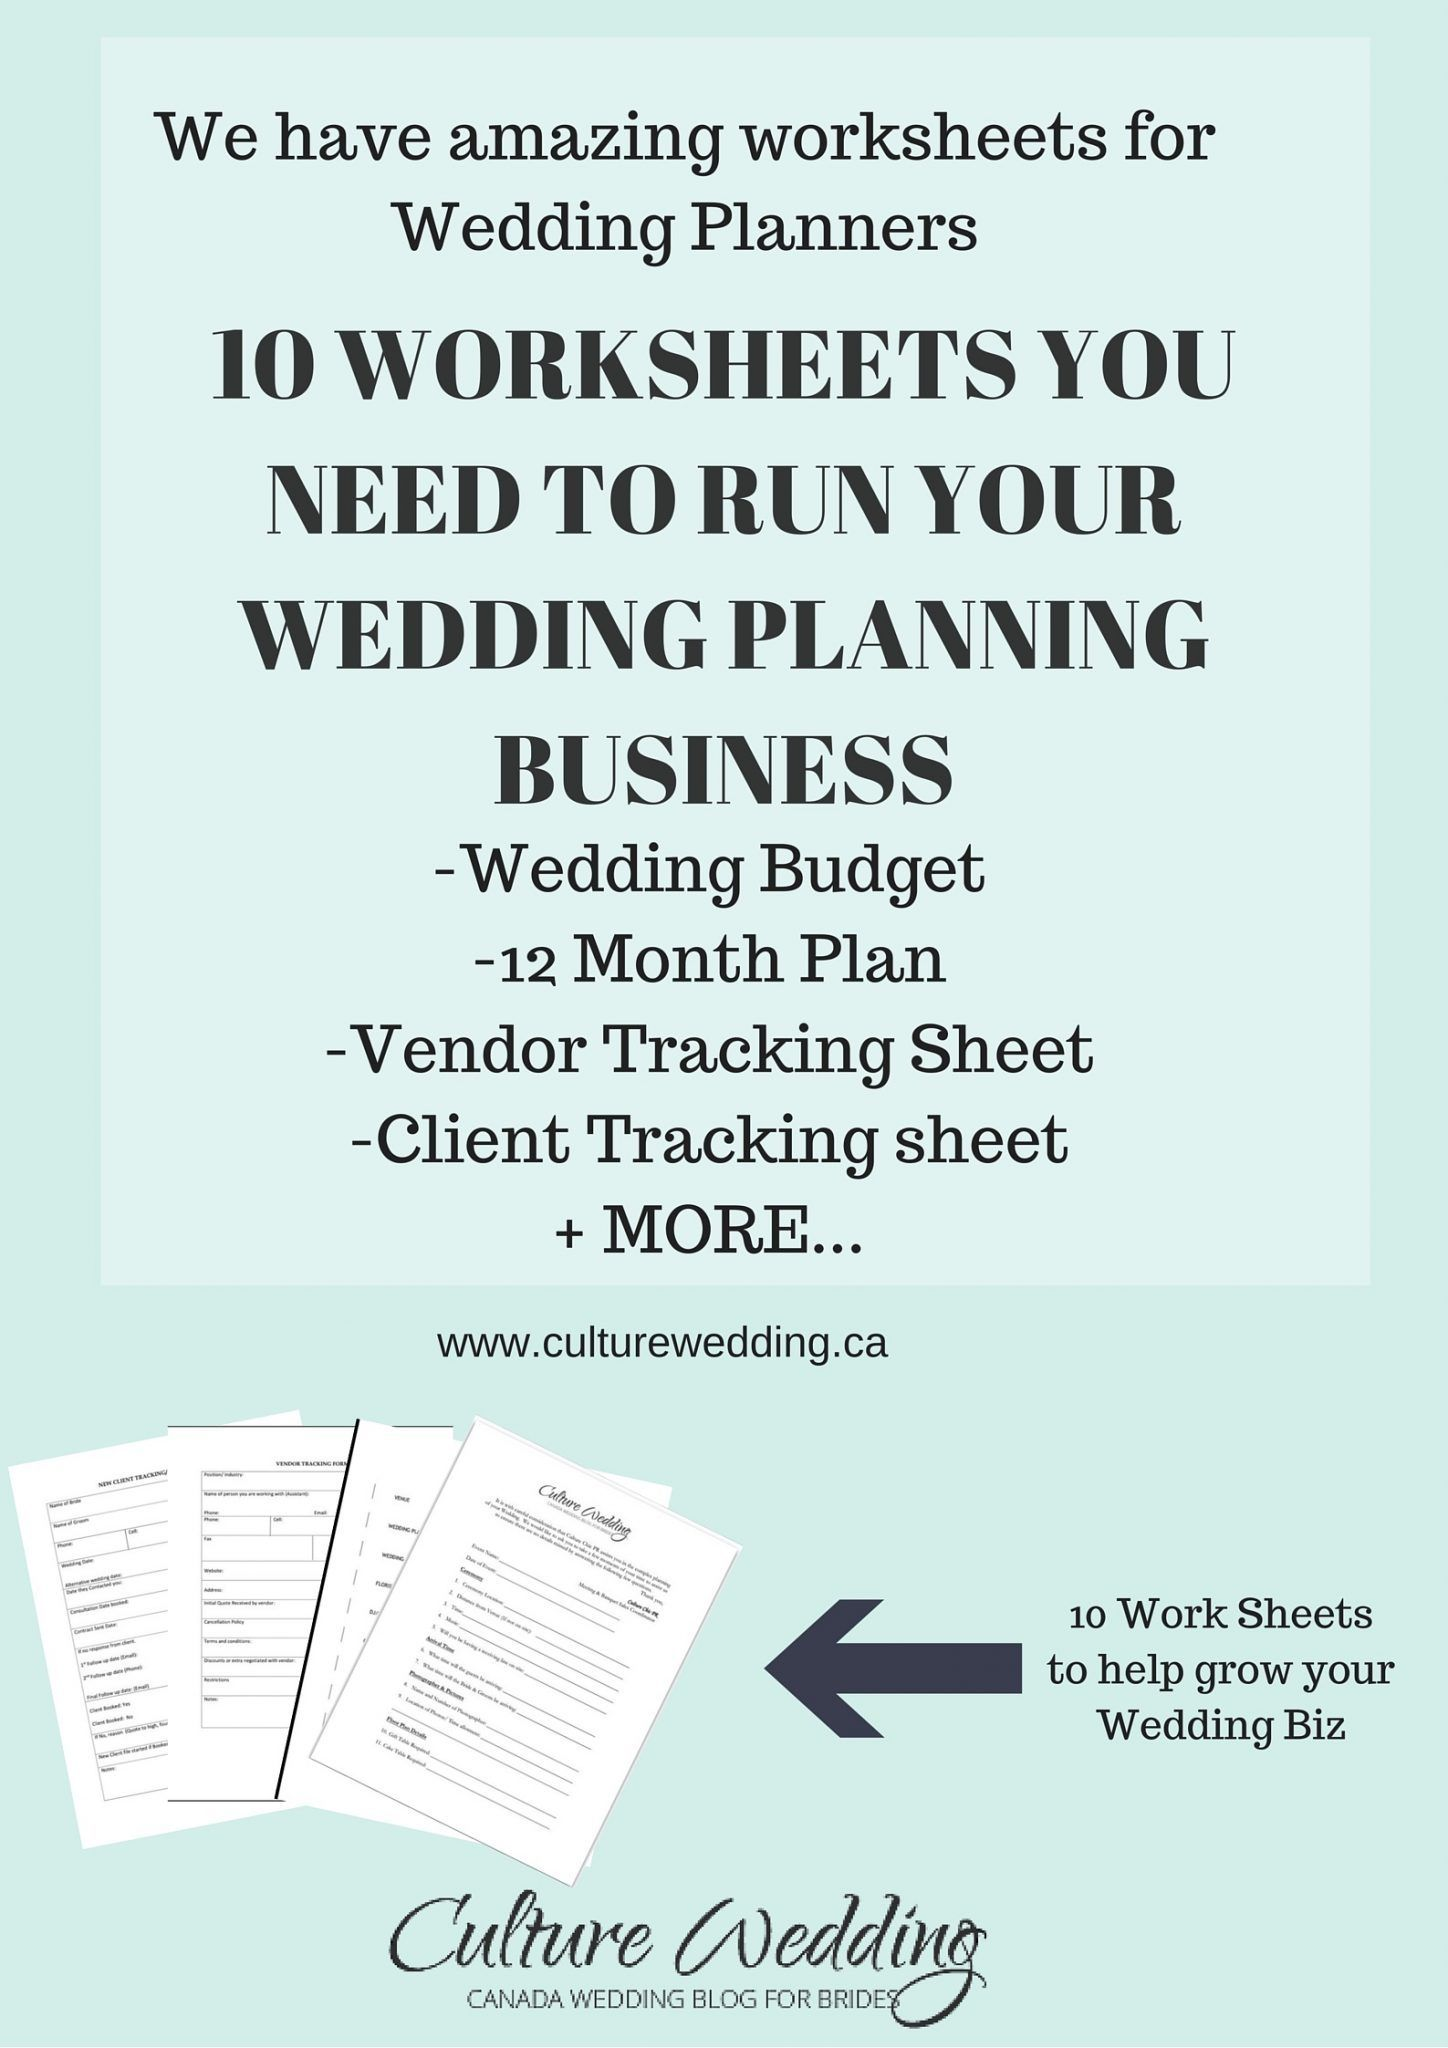 10 Worksheets To Grow Your Wedding Business